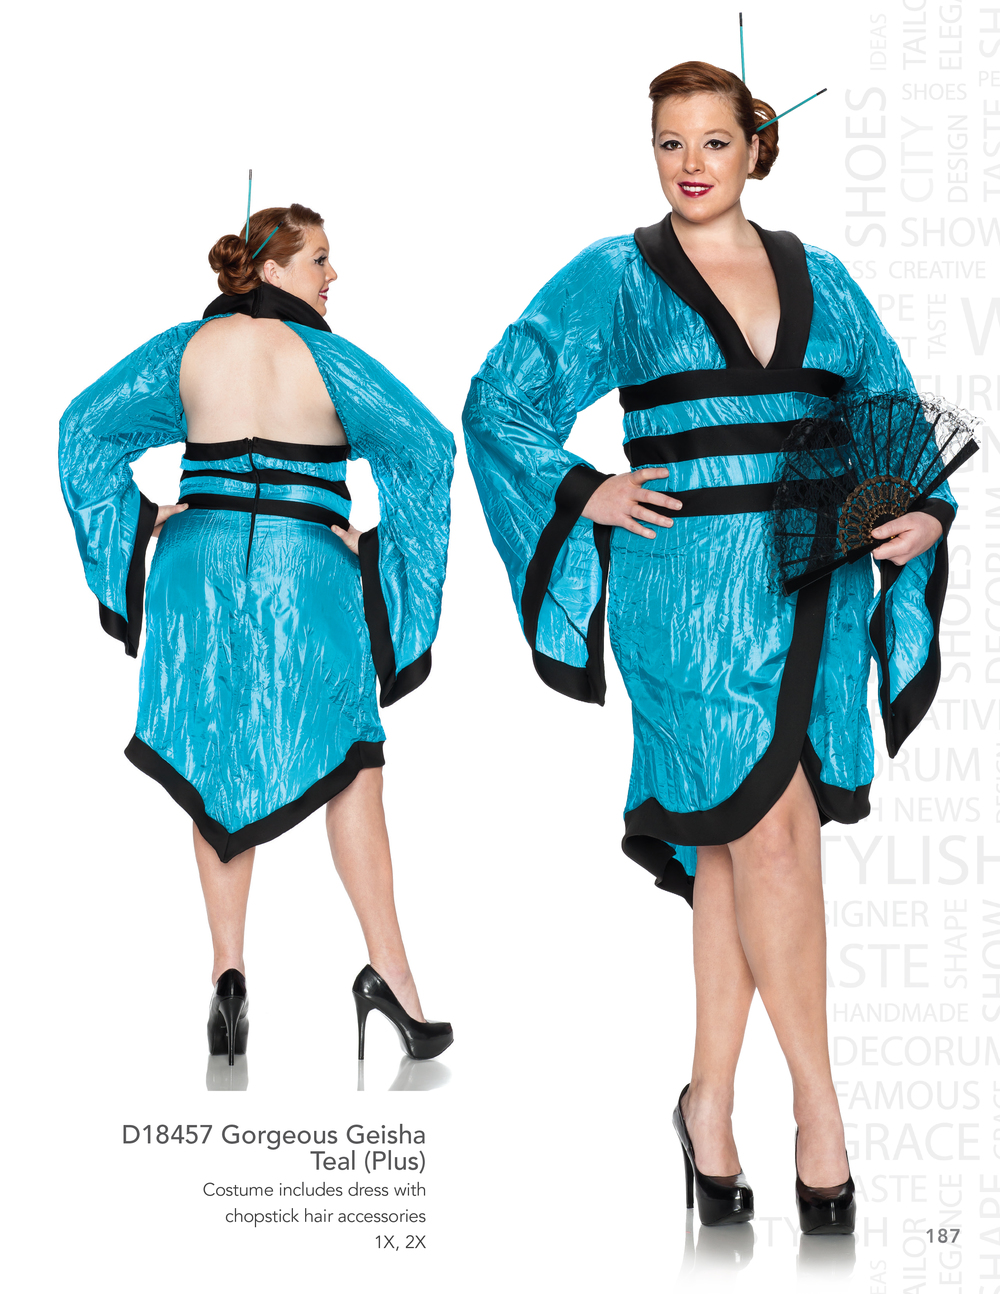 D18457 Gorgeous Geisha - Teal